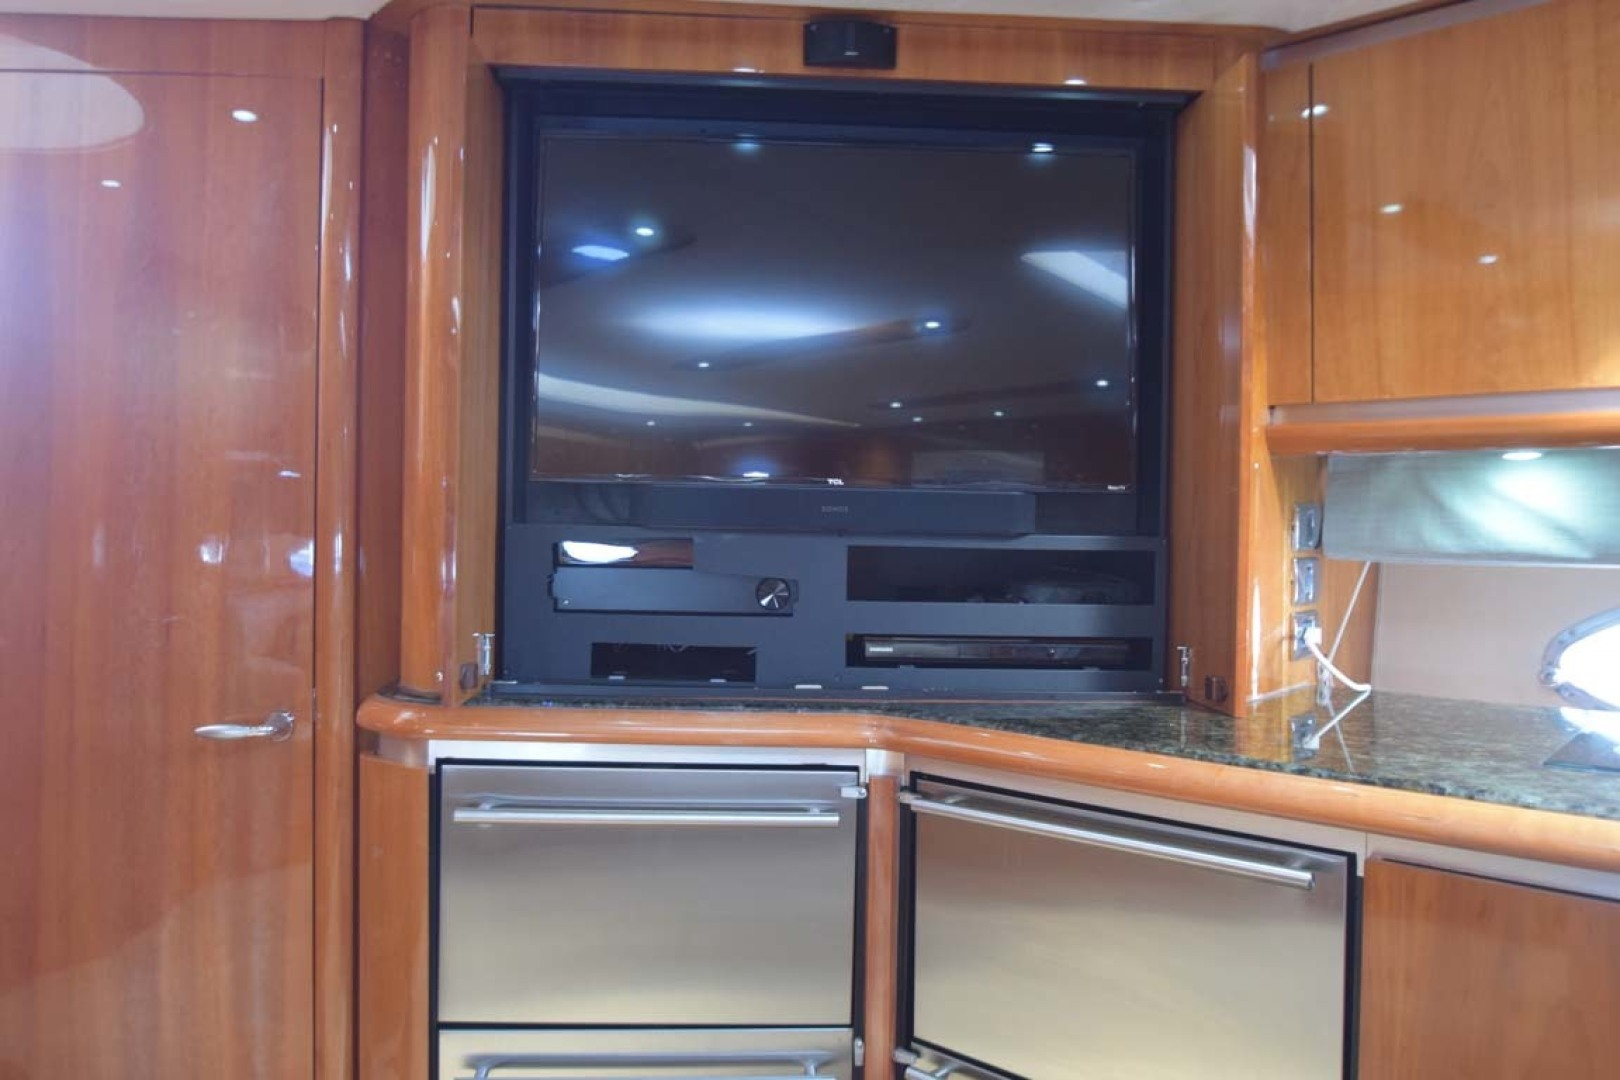 Sunseeker-Predator 2003-Low Profile PALM BEACH-Florida-United States-Flat Screen TV-1576333 | Thumbnail